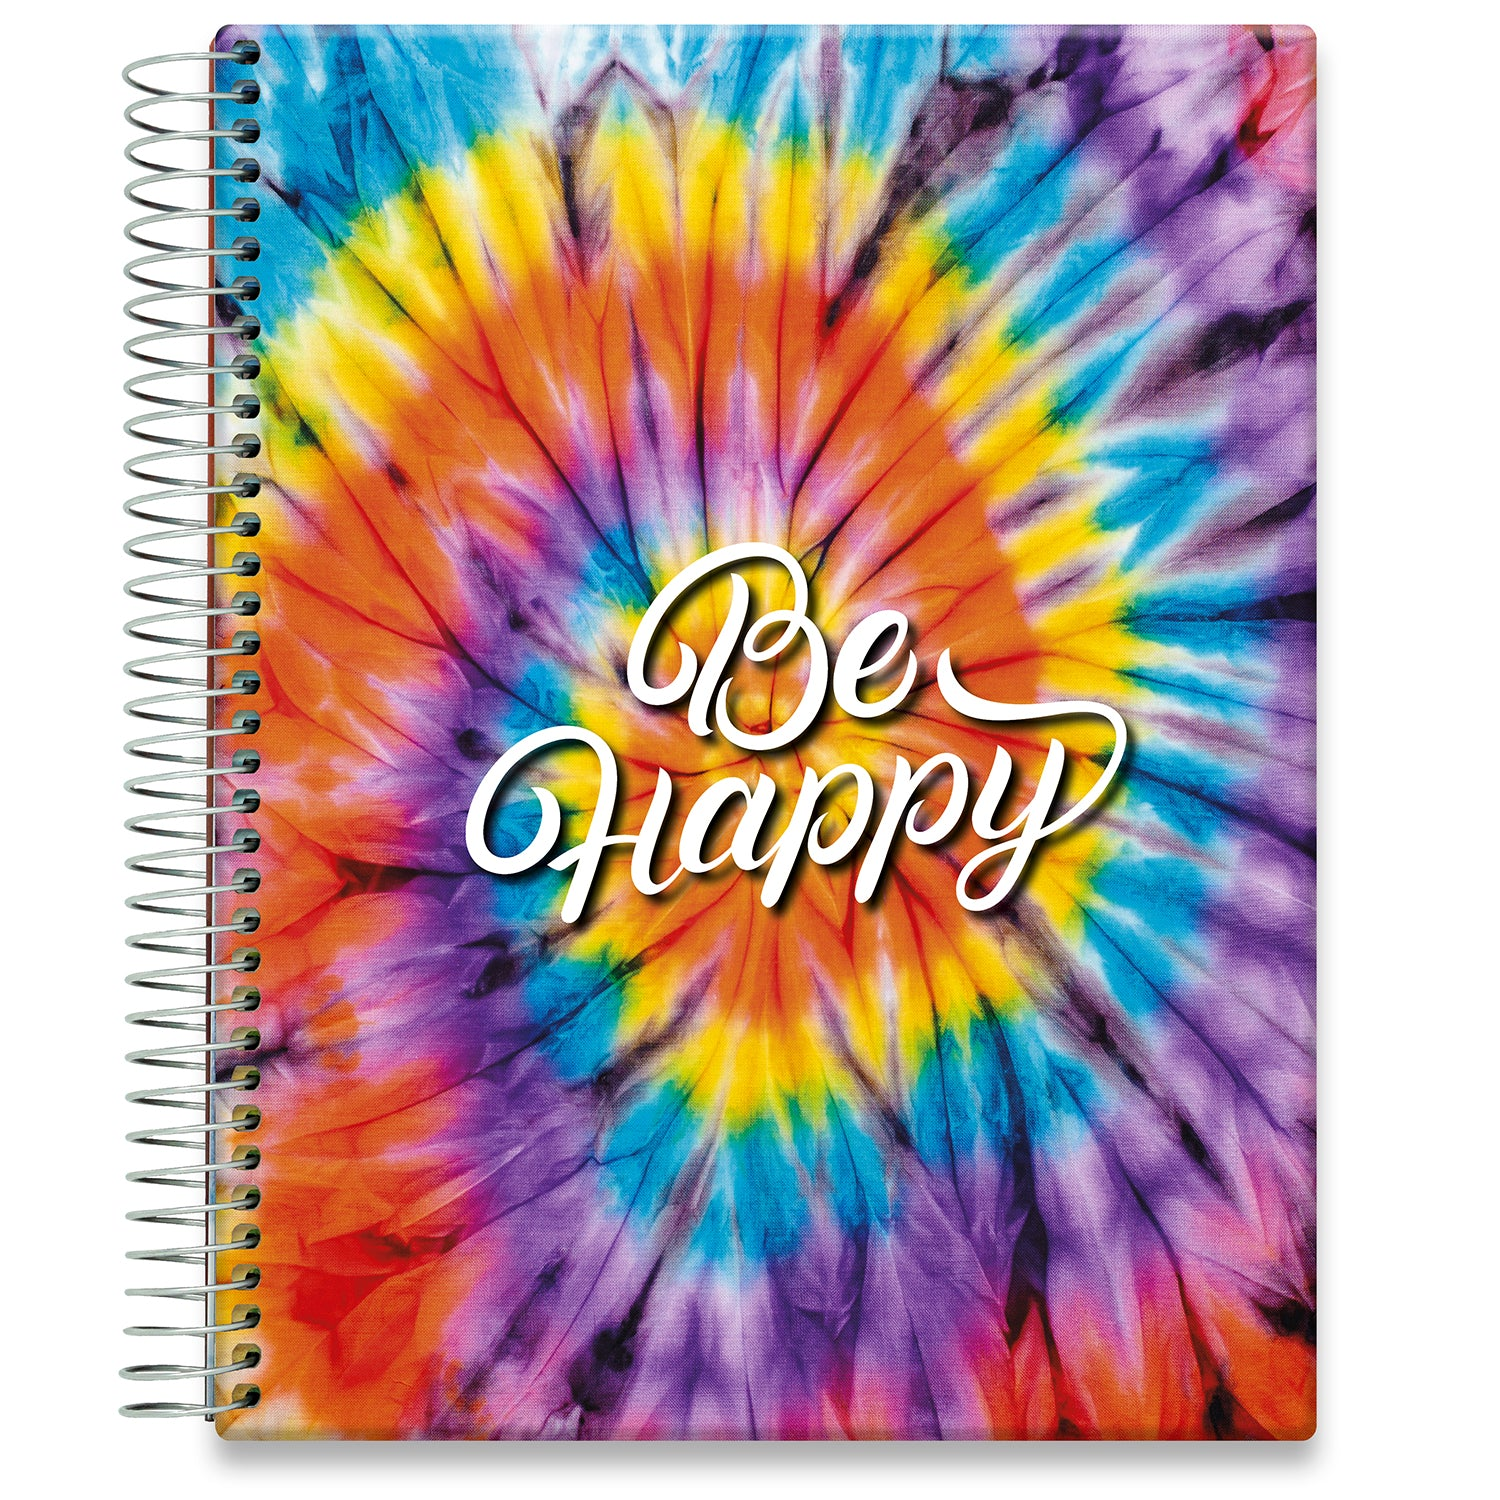 Planner 2021-2022 • April 2021 to June 2022 Academic Year • 8.5x11 Hardcover • Be Happy - Tie Dye